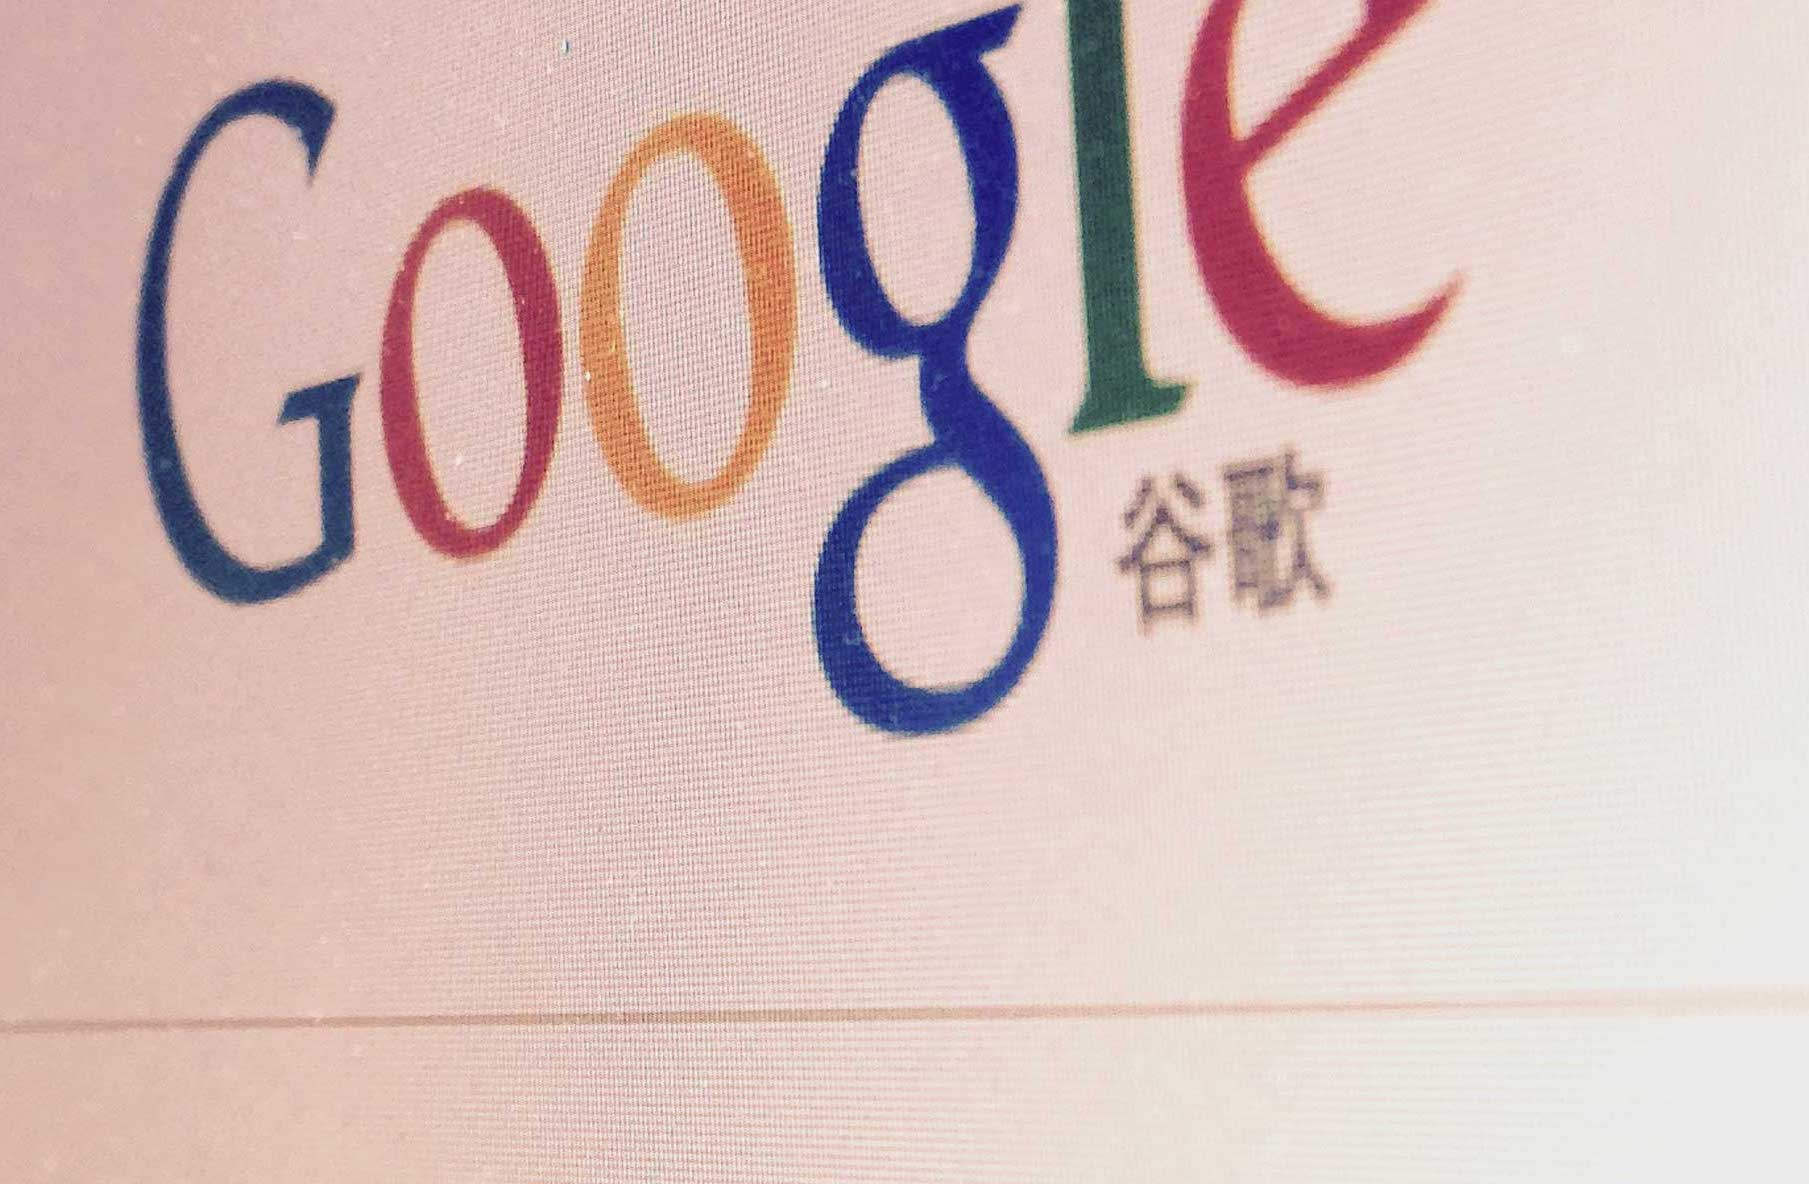 Google Opens First Shenzhen Office, Third in China